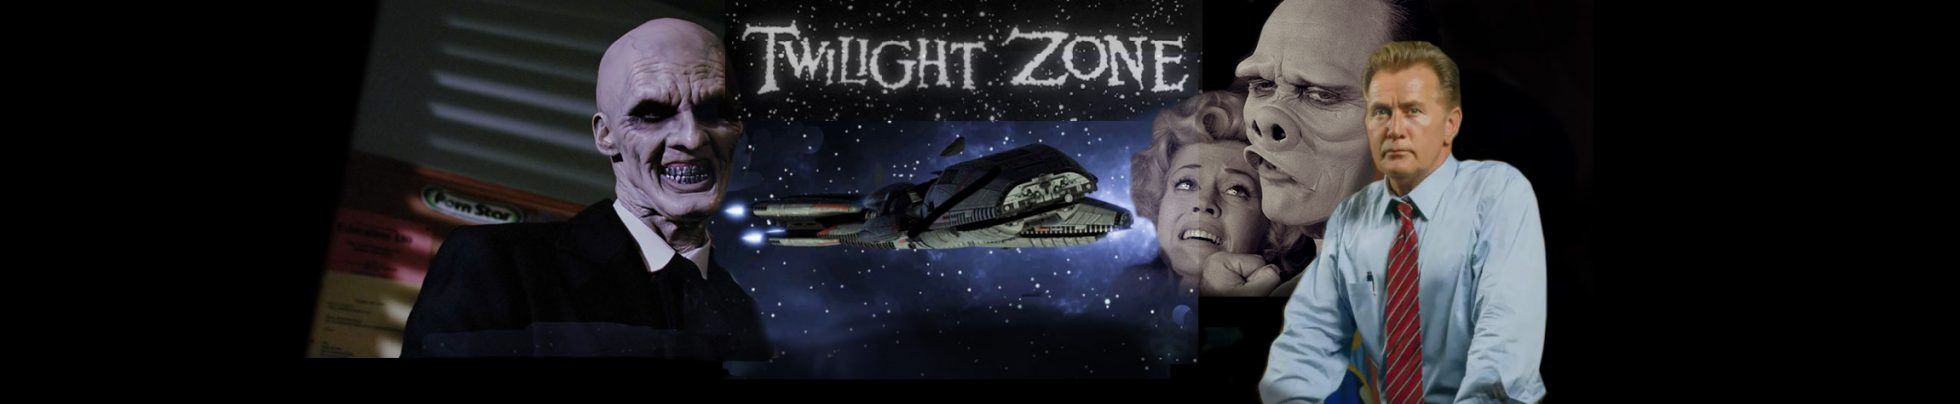 Twilight Zone Banner